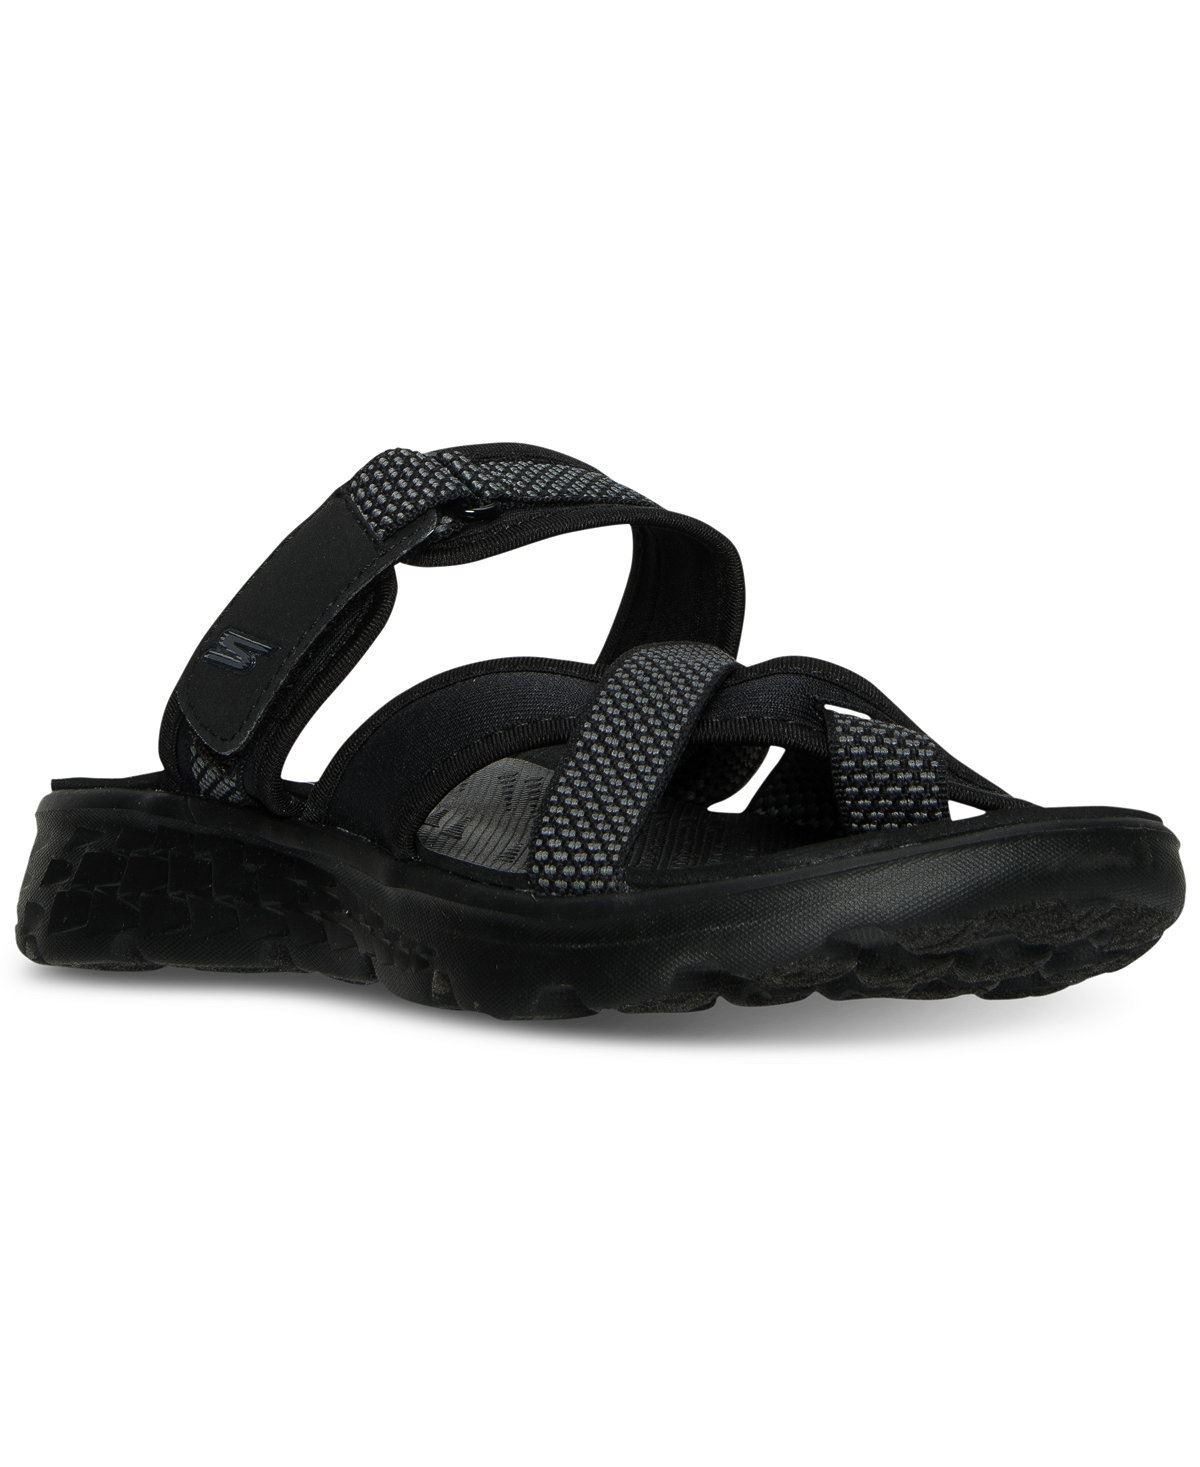 d6fbe3cbdcab Skechers Sandals Performance Womens On The GO 400 Discover Sandals ...